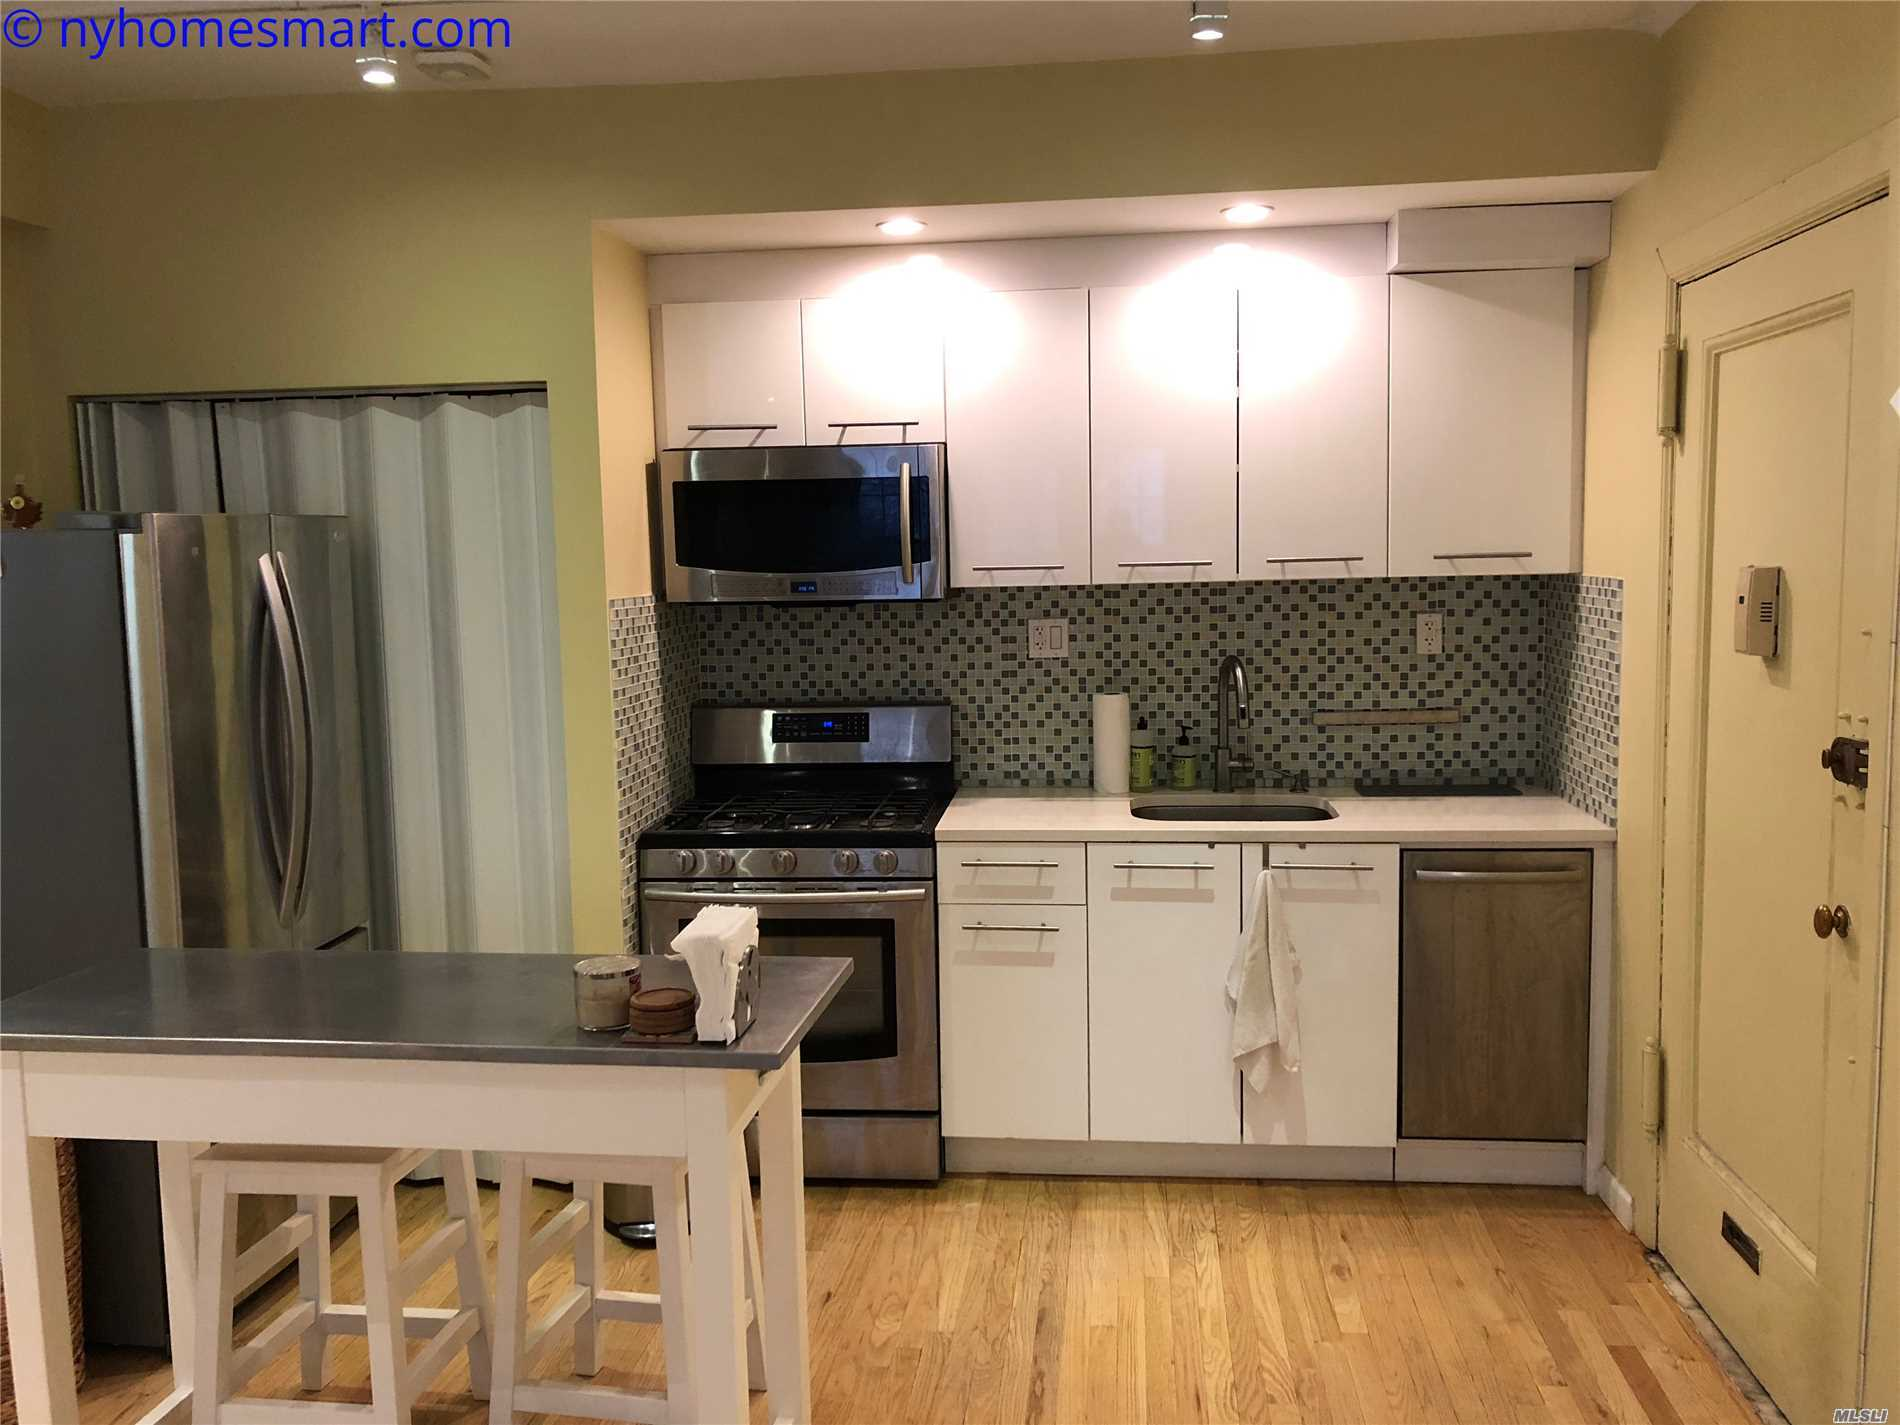 Low Maintenance, Spacious, Well-Kept Studio In The Heart Of Forest Hills Gardens. Charming Efficiency Kitchen. Vented Bath With Great Tub & Fixtures, & A Window. Beautiful Hardwood Floors, Large Windows, Huge Closets. A Fresh Beauty With Loads Of Original Detail, Plus Charm, & Efficiency. Great Area, By Station Square & Next To The West Side Tennis Club. Steps Away To Lirr, Subways(E/F/M/R) And Shopping Area. Parking $160/Year. Pet Friendly.